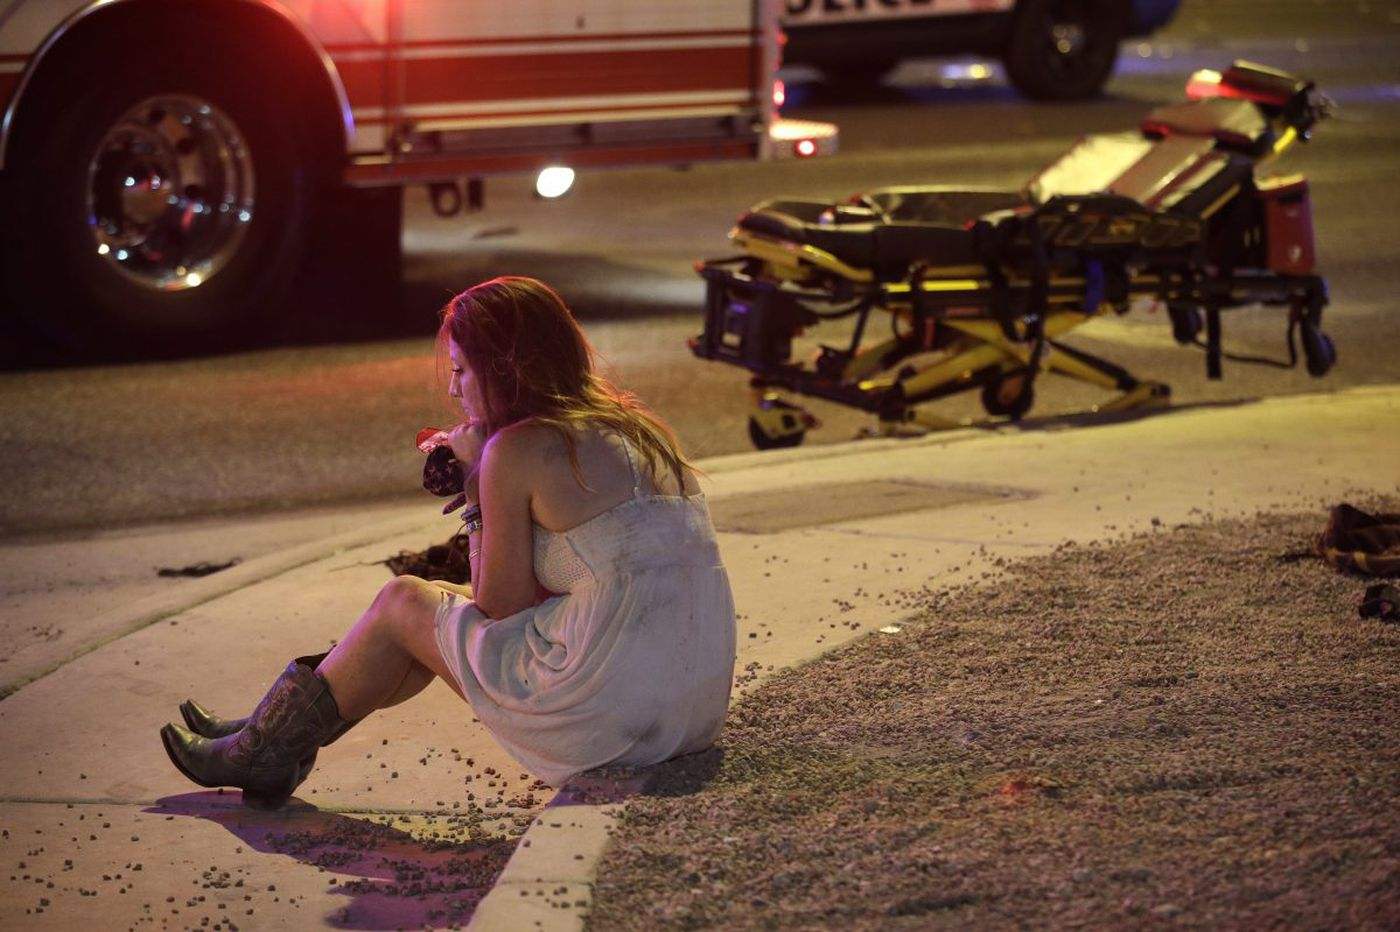 A therapist's advice for coping with the Las Vegas shooting